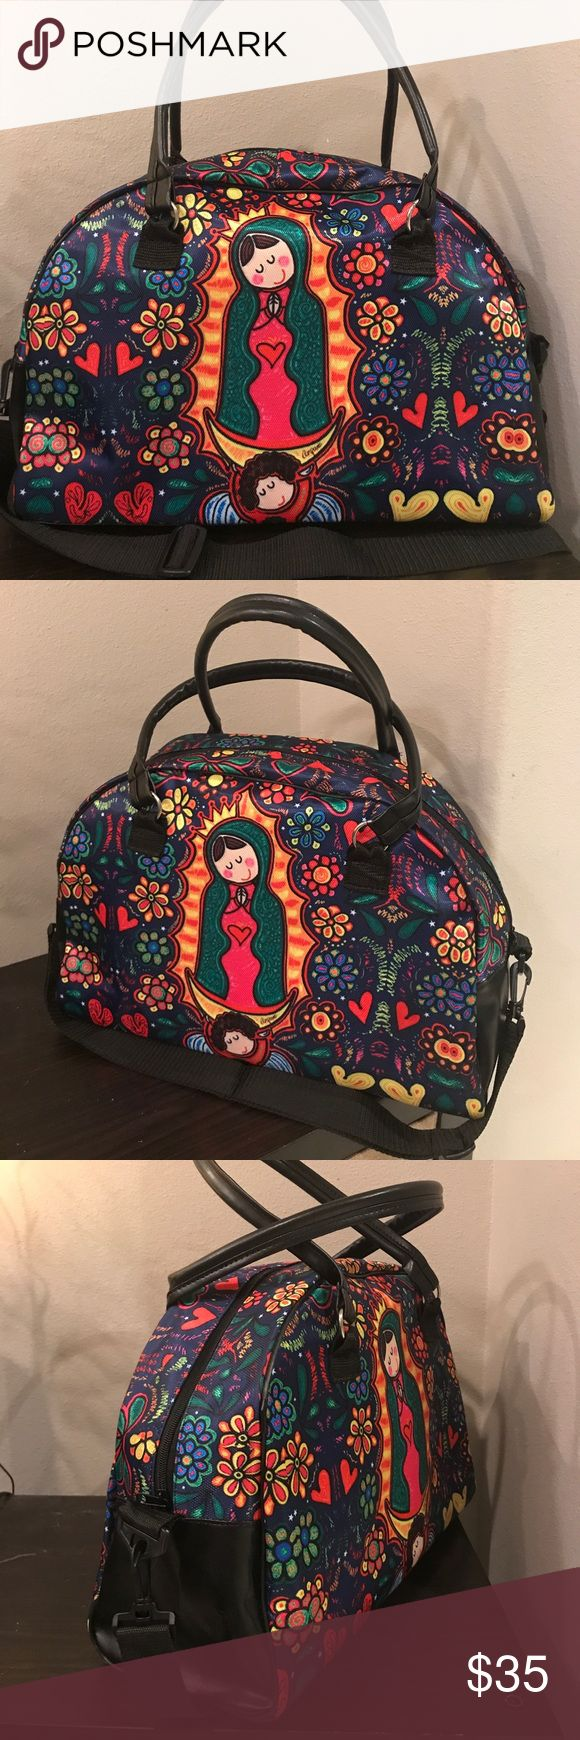 🌵New Our Lady of Guadalupe Travel Bag Duffel Bag New Travel Bag with lots of space. Features Our Lady of Guadalupe  ( la virgencita o La Virgen de Guadalupe) a Mexican must have! Perfect to carry everything you need! Made in Mexico. Printed all back, front and sides. Adjustable and detachable shoulder strap. Fully lined. Cielito Lindo Bags Travel Bags